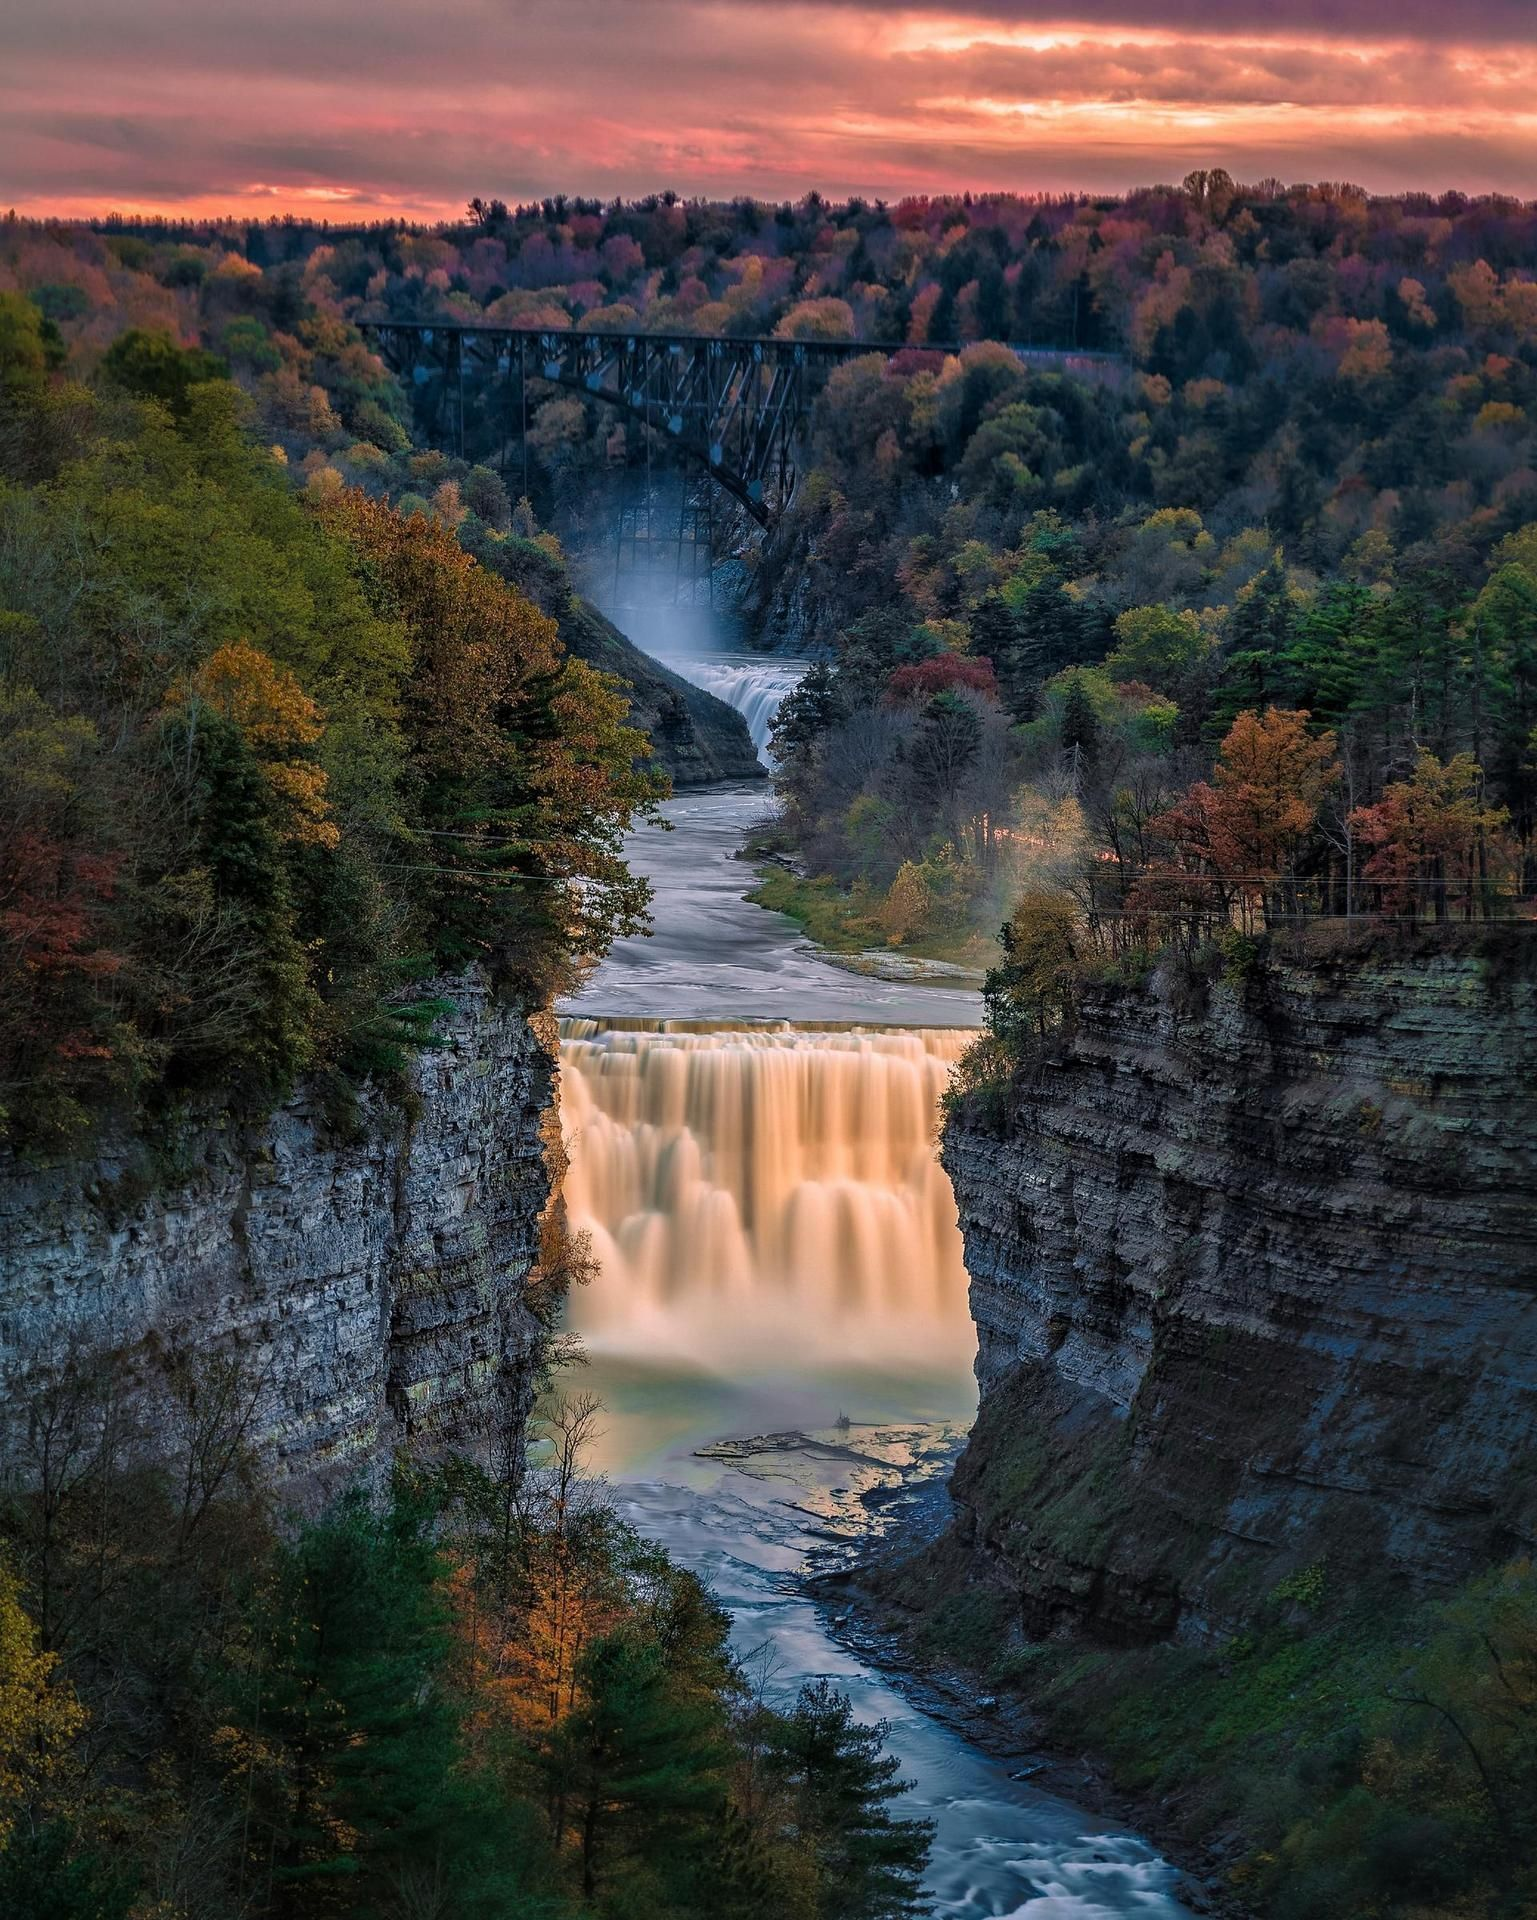 Letchworth Upperfalls after Sunset [Letchworth State Park NY USA][1537x1920][OC][@zToad] #letchworthstatepark Letchworth Upperfalls after Sunset [Letchworth State Park NY USA][1537x1920][OC][@zToad] #letchworthstatepark Letchworth Upperfalls after Sunset [Letchworth State Park NY USA][1537x1920][OC][@zToad] #letchworthstatepark Letchworth Upperfalls after Sunset [Letchworth State Park NY USA][1537x1920][OC][@zToad] #letchworthstatepark